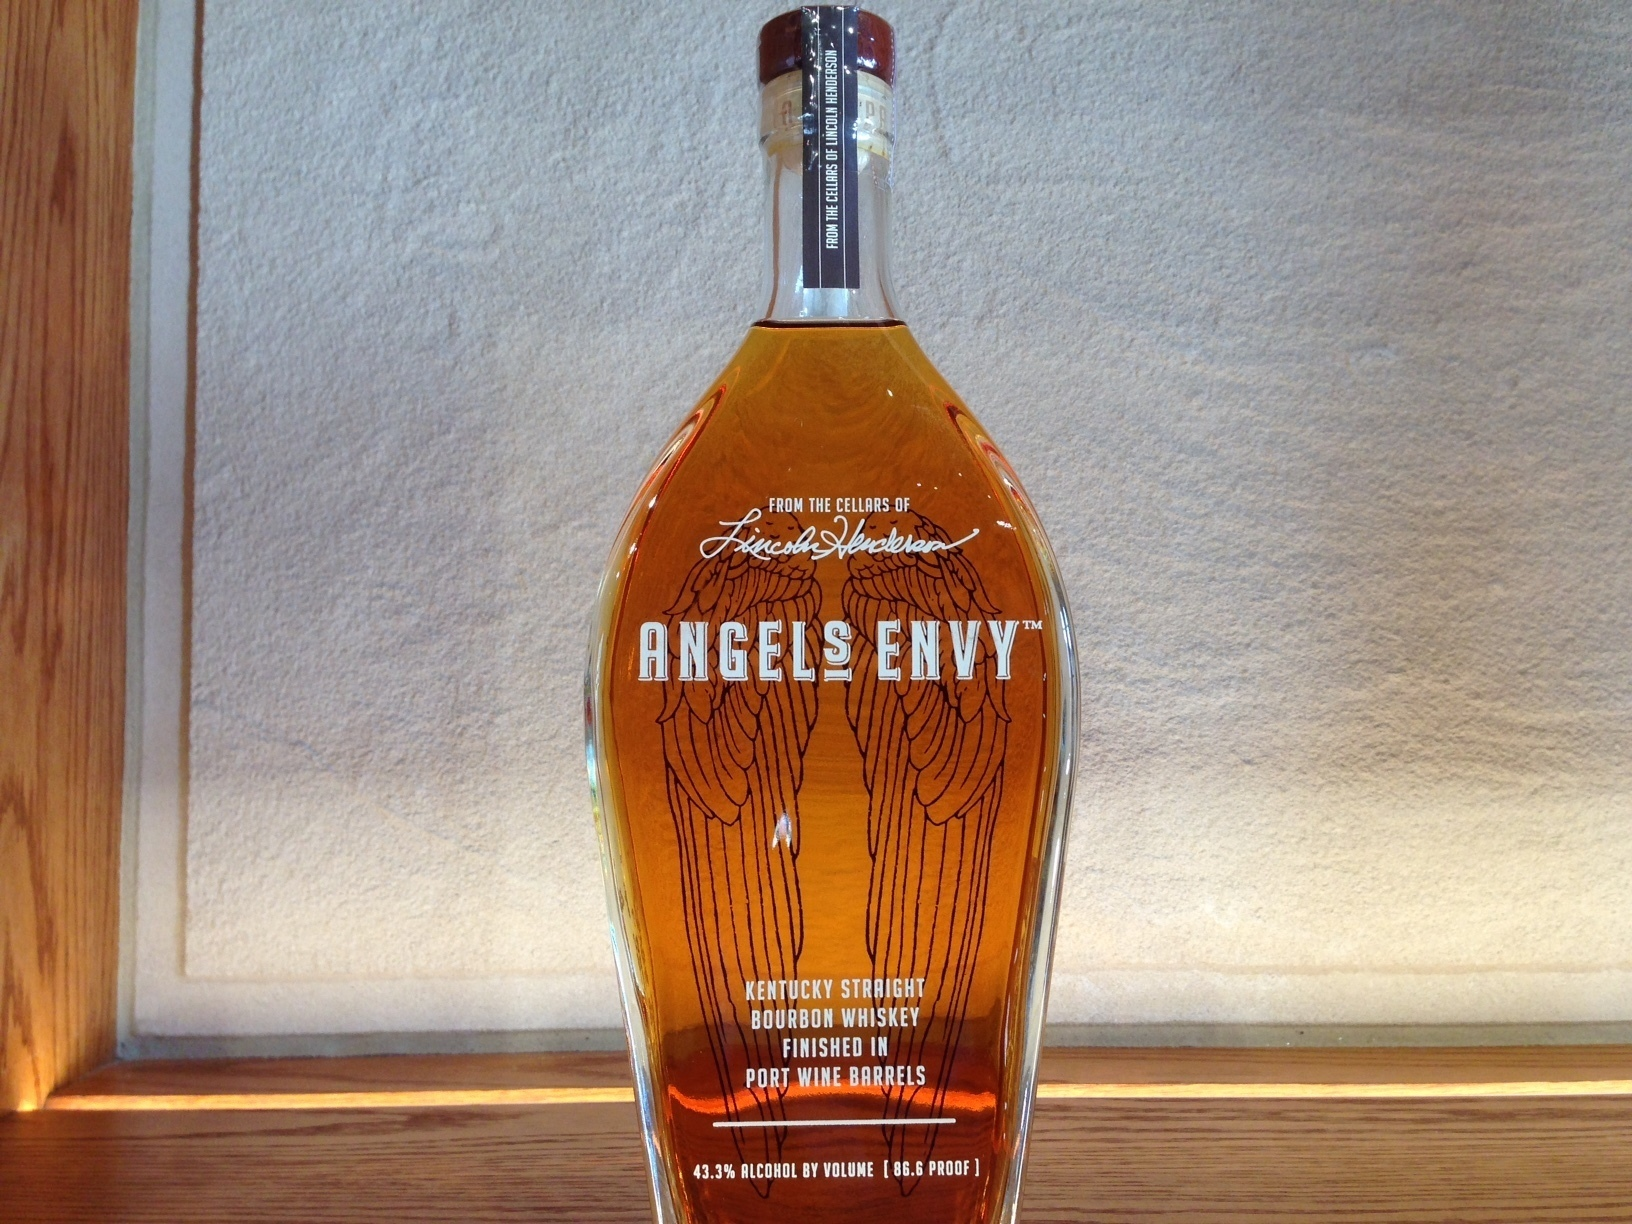 A bottle of Angel's Envy bourbon is displayed at the gift shop of Angel's Envy distillery, in Louisville, Ky. Visitors to Louisville's newest distillery raised glasses Wednesday to toast the opening of the Angel's Envy facility in a high-profile location downtown. Tourism officials are celebrating another sign of bourbon's momentum in a city riding a wave of whiskey-inspired tourism. (AP Photo/Bruce Schreiner)